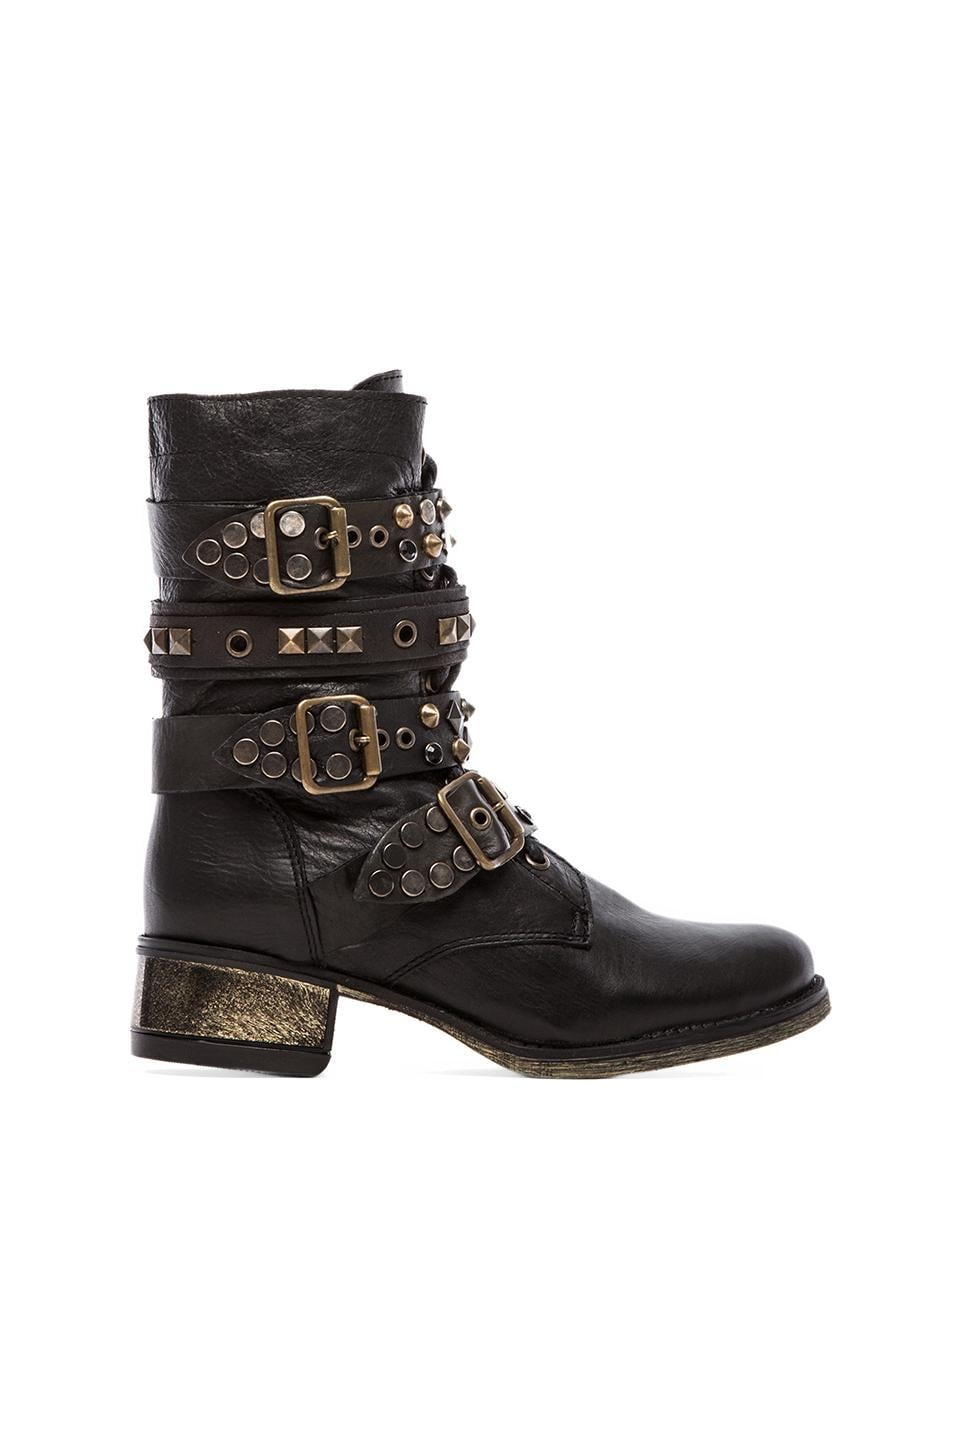 Steve Madden Lilian Studded Moto Boot in Black